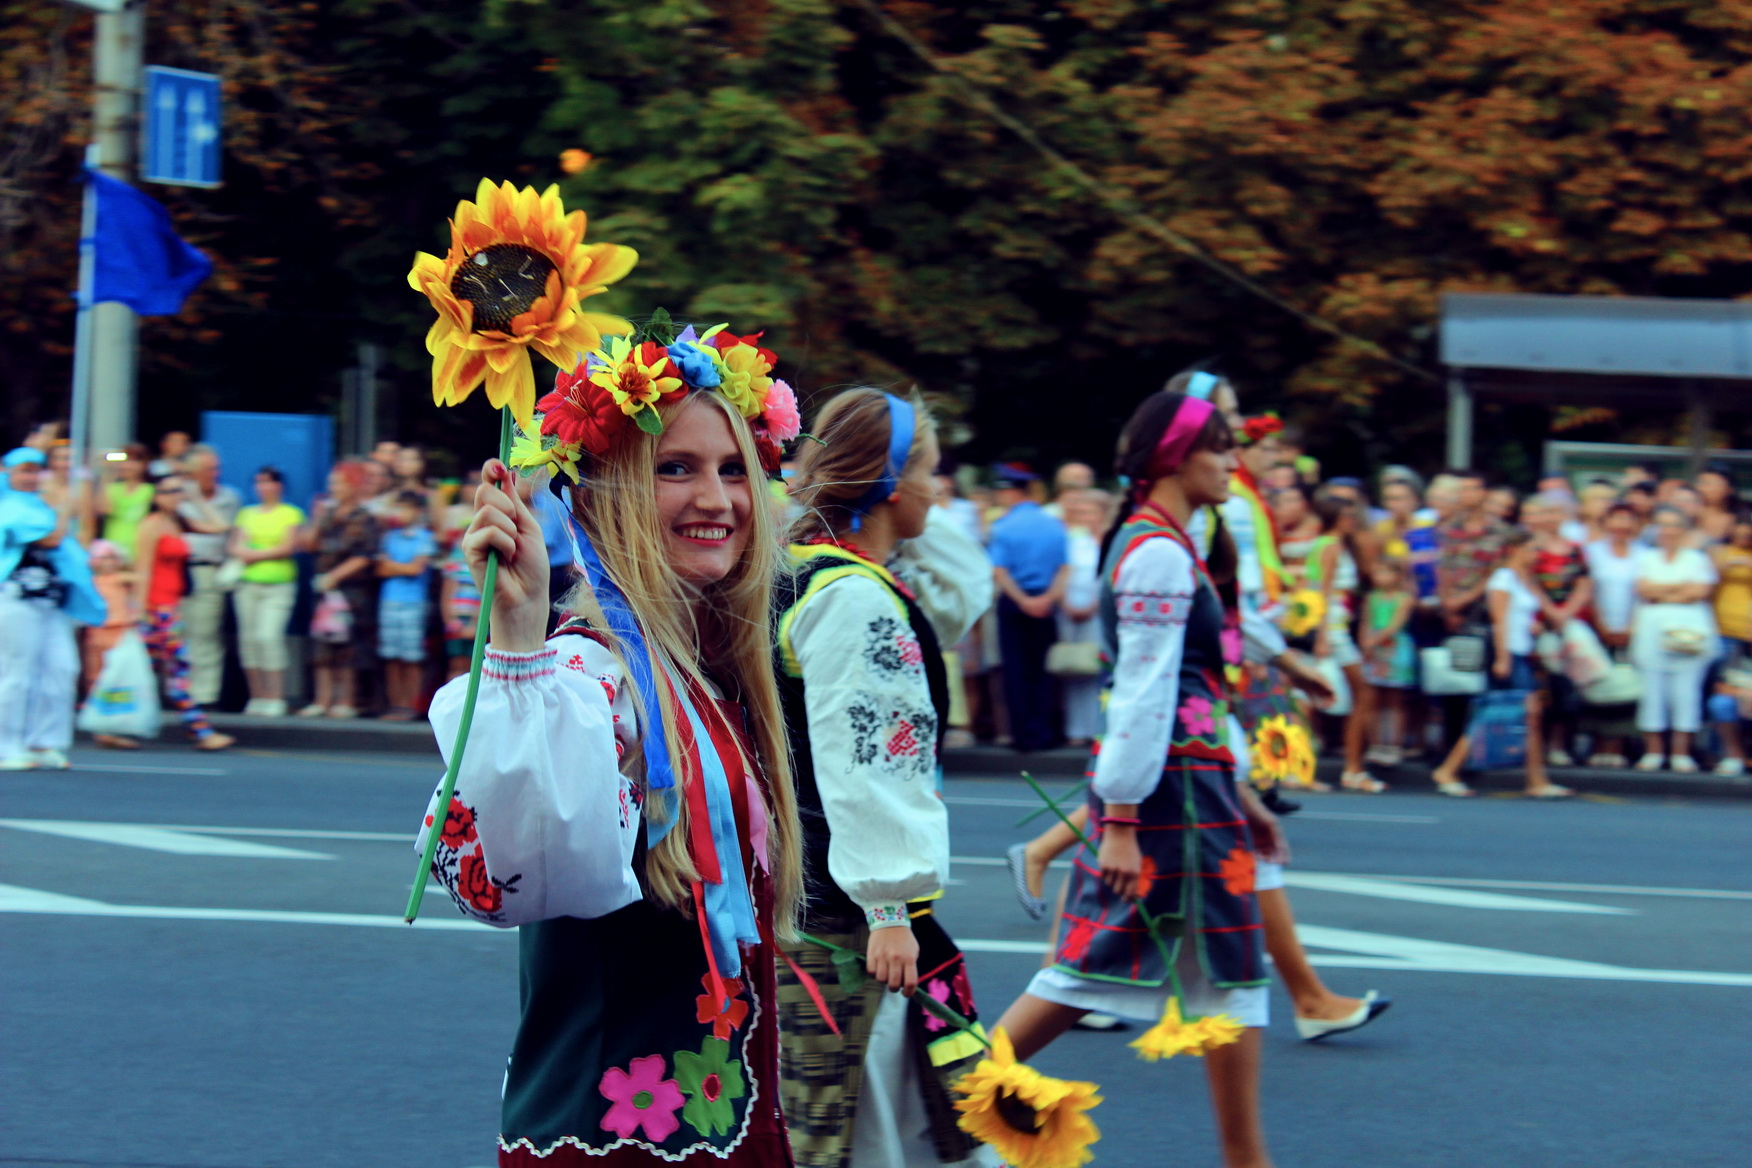 Day of Ukrainian Donetsk. Permyakova Elena